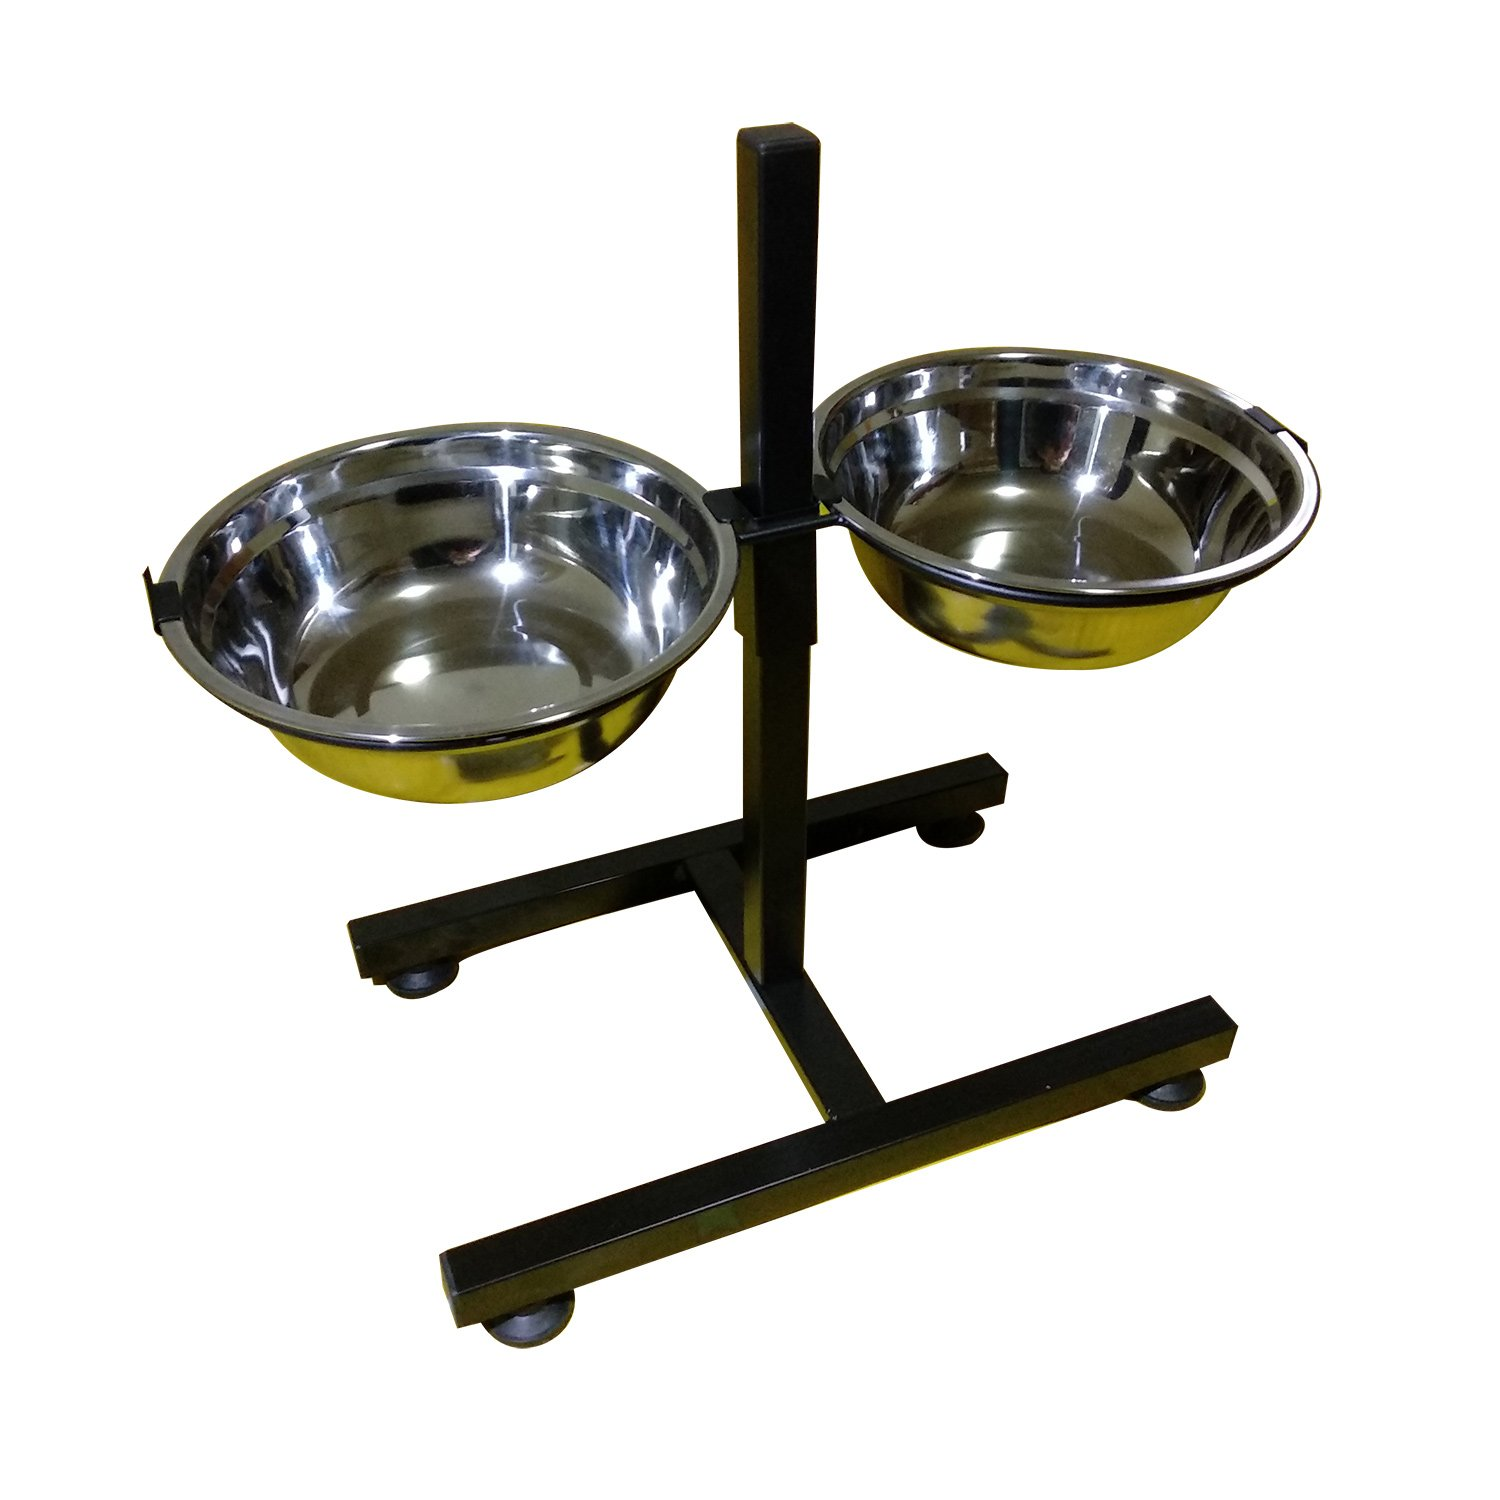 BobbyPet Adjustable Raised Double Stainless Steel Dog Diner Bowls. H-Style Height Elevated Standing with 2.2QT Dual Dog Dish by BobbyPet